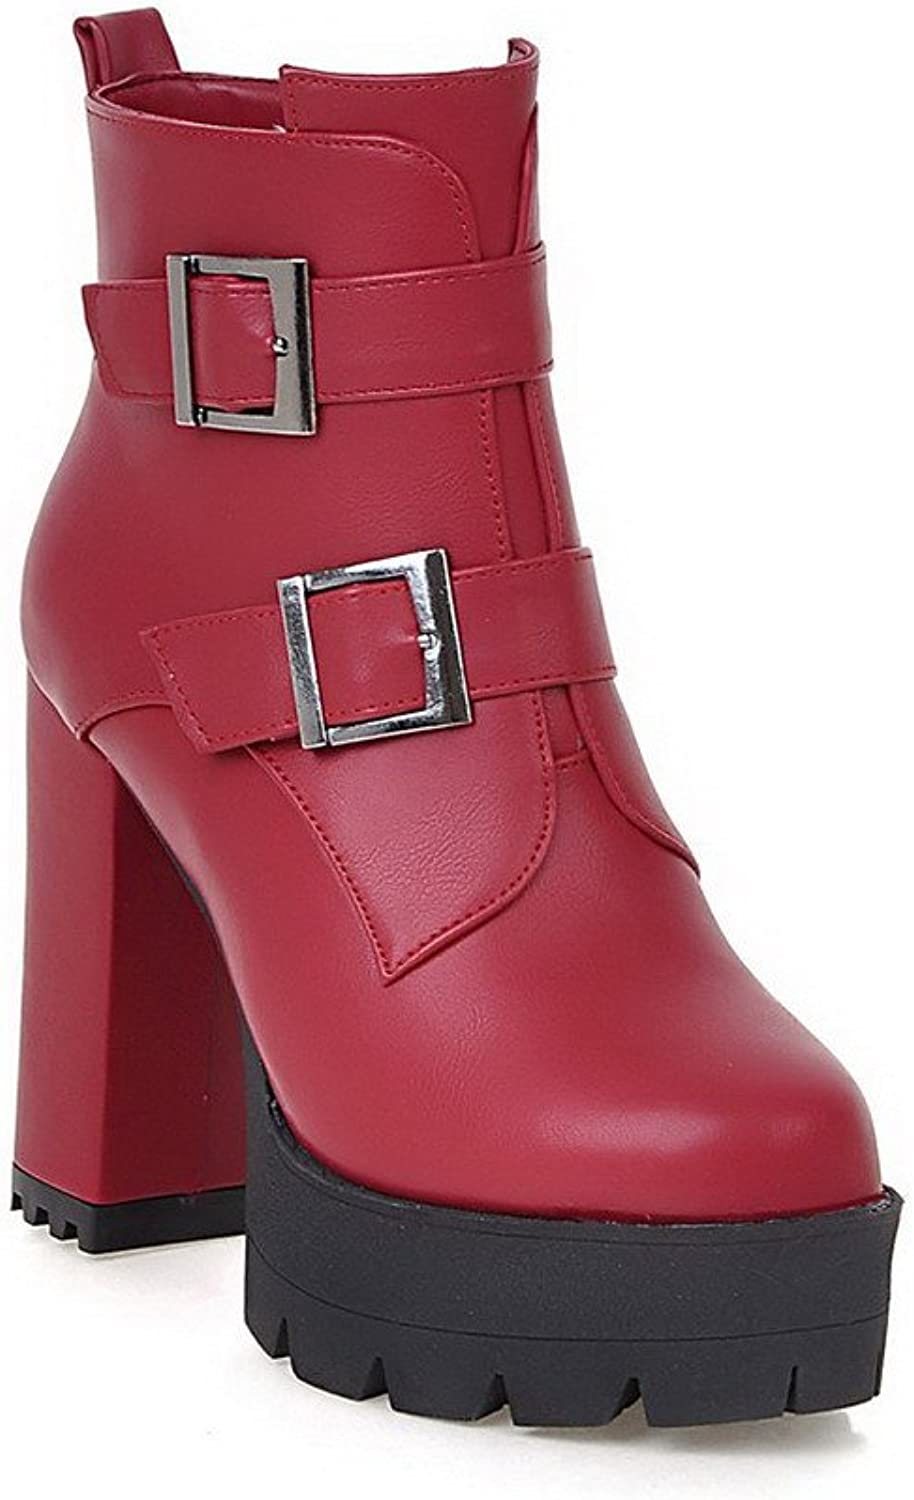 WeiPoot Women's High-Heels Solid Closed Round Toe Soft Material Zipper Boots